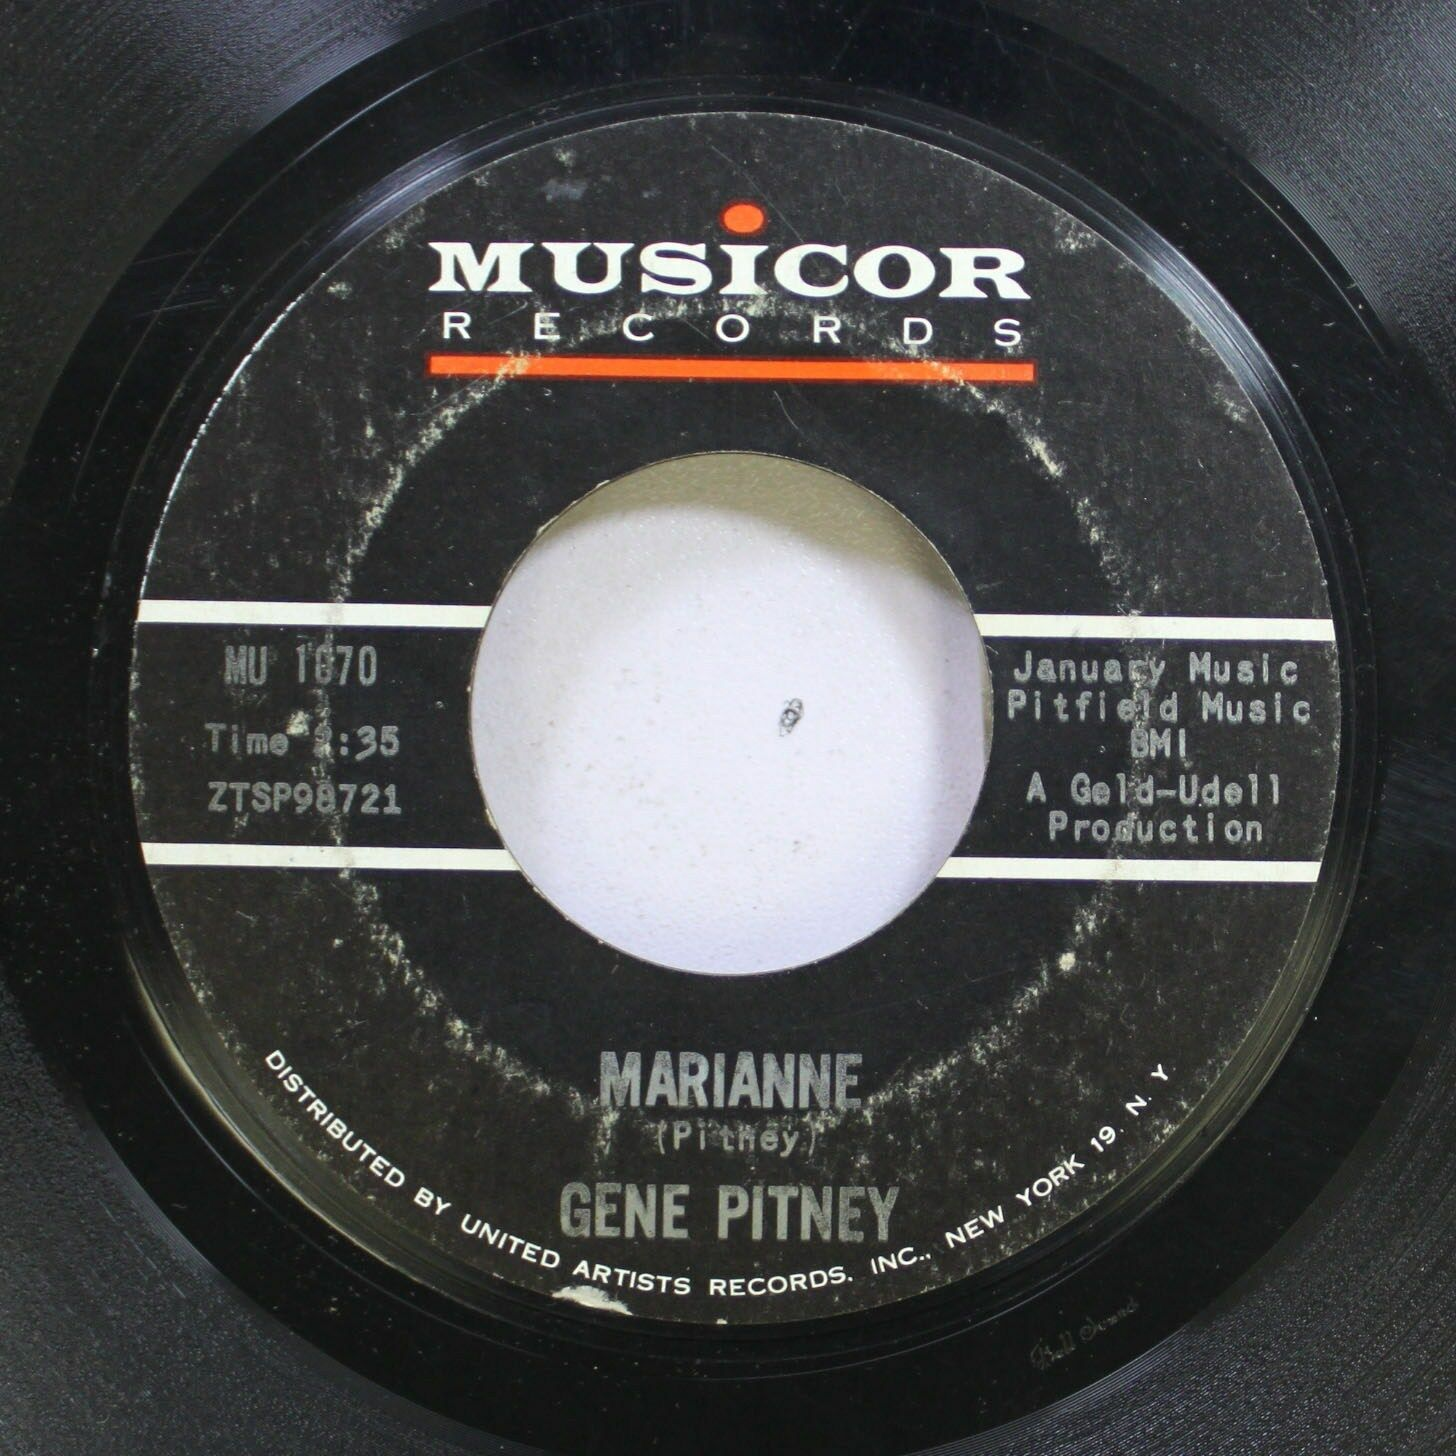 Details about 50'S & 60'S 45 Gene Pitney - Marianne / I Must Be Seeing  Things On Musicor Recor